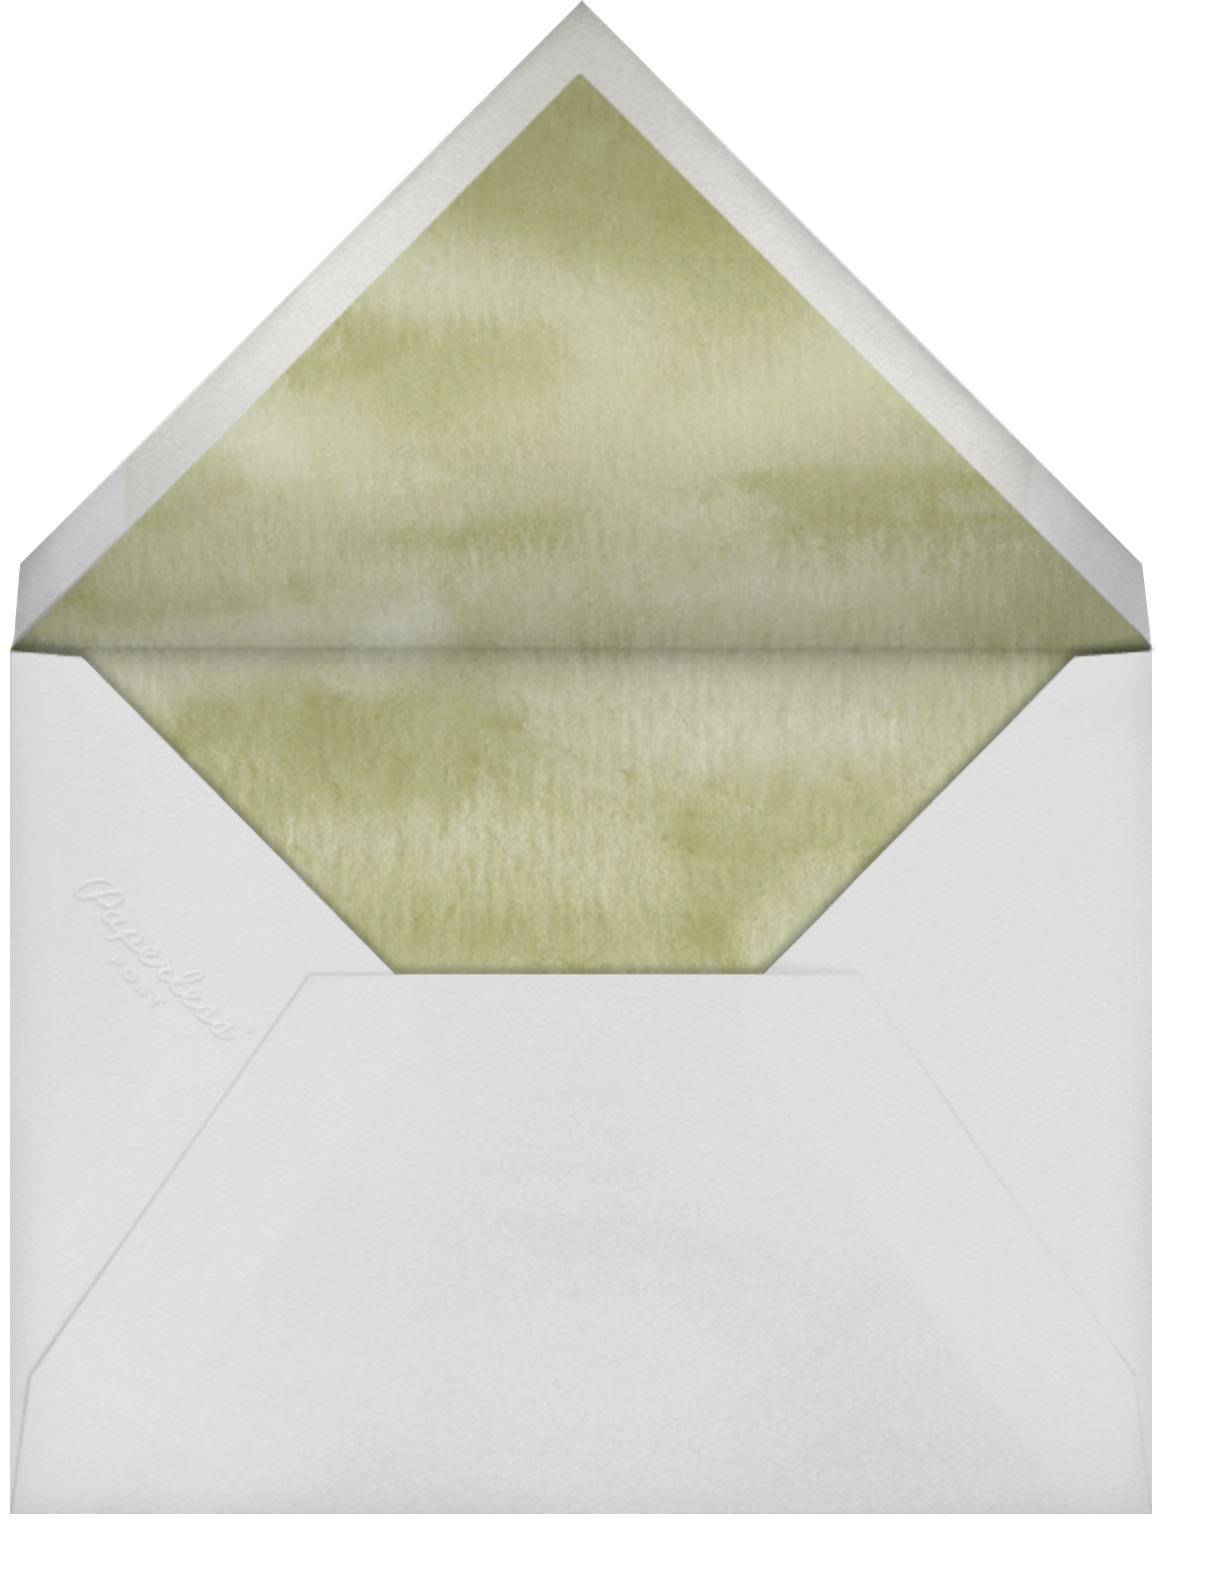 Wisteria Canopy - Meringue - Felix Doolittle - General entertaining - envelope back